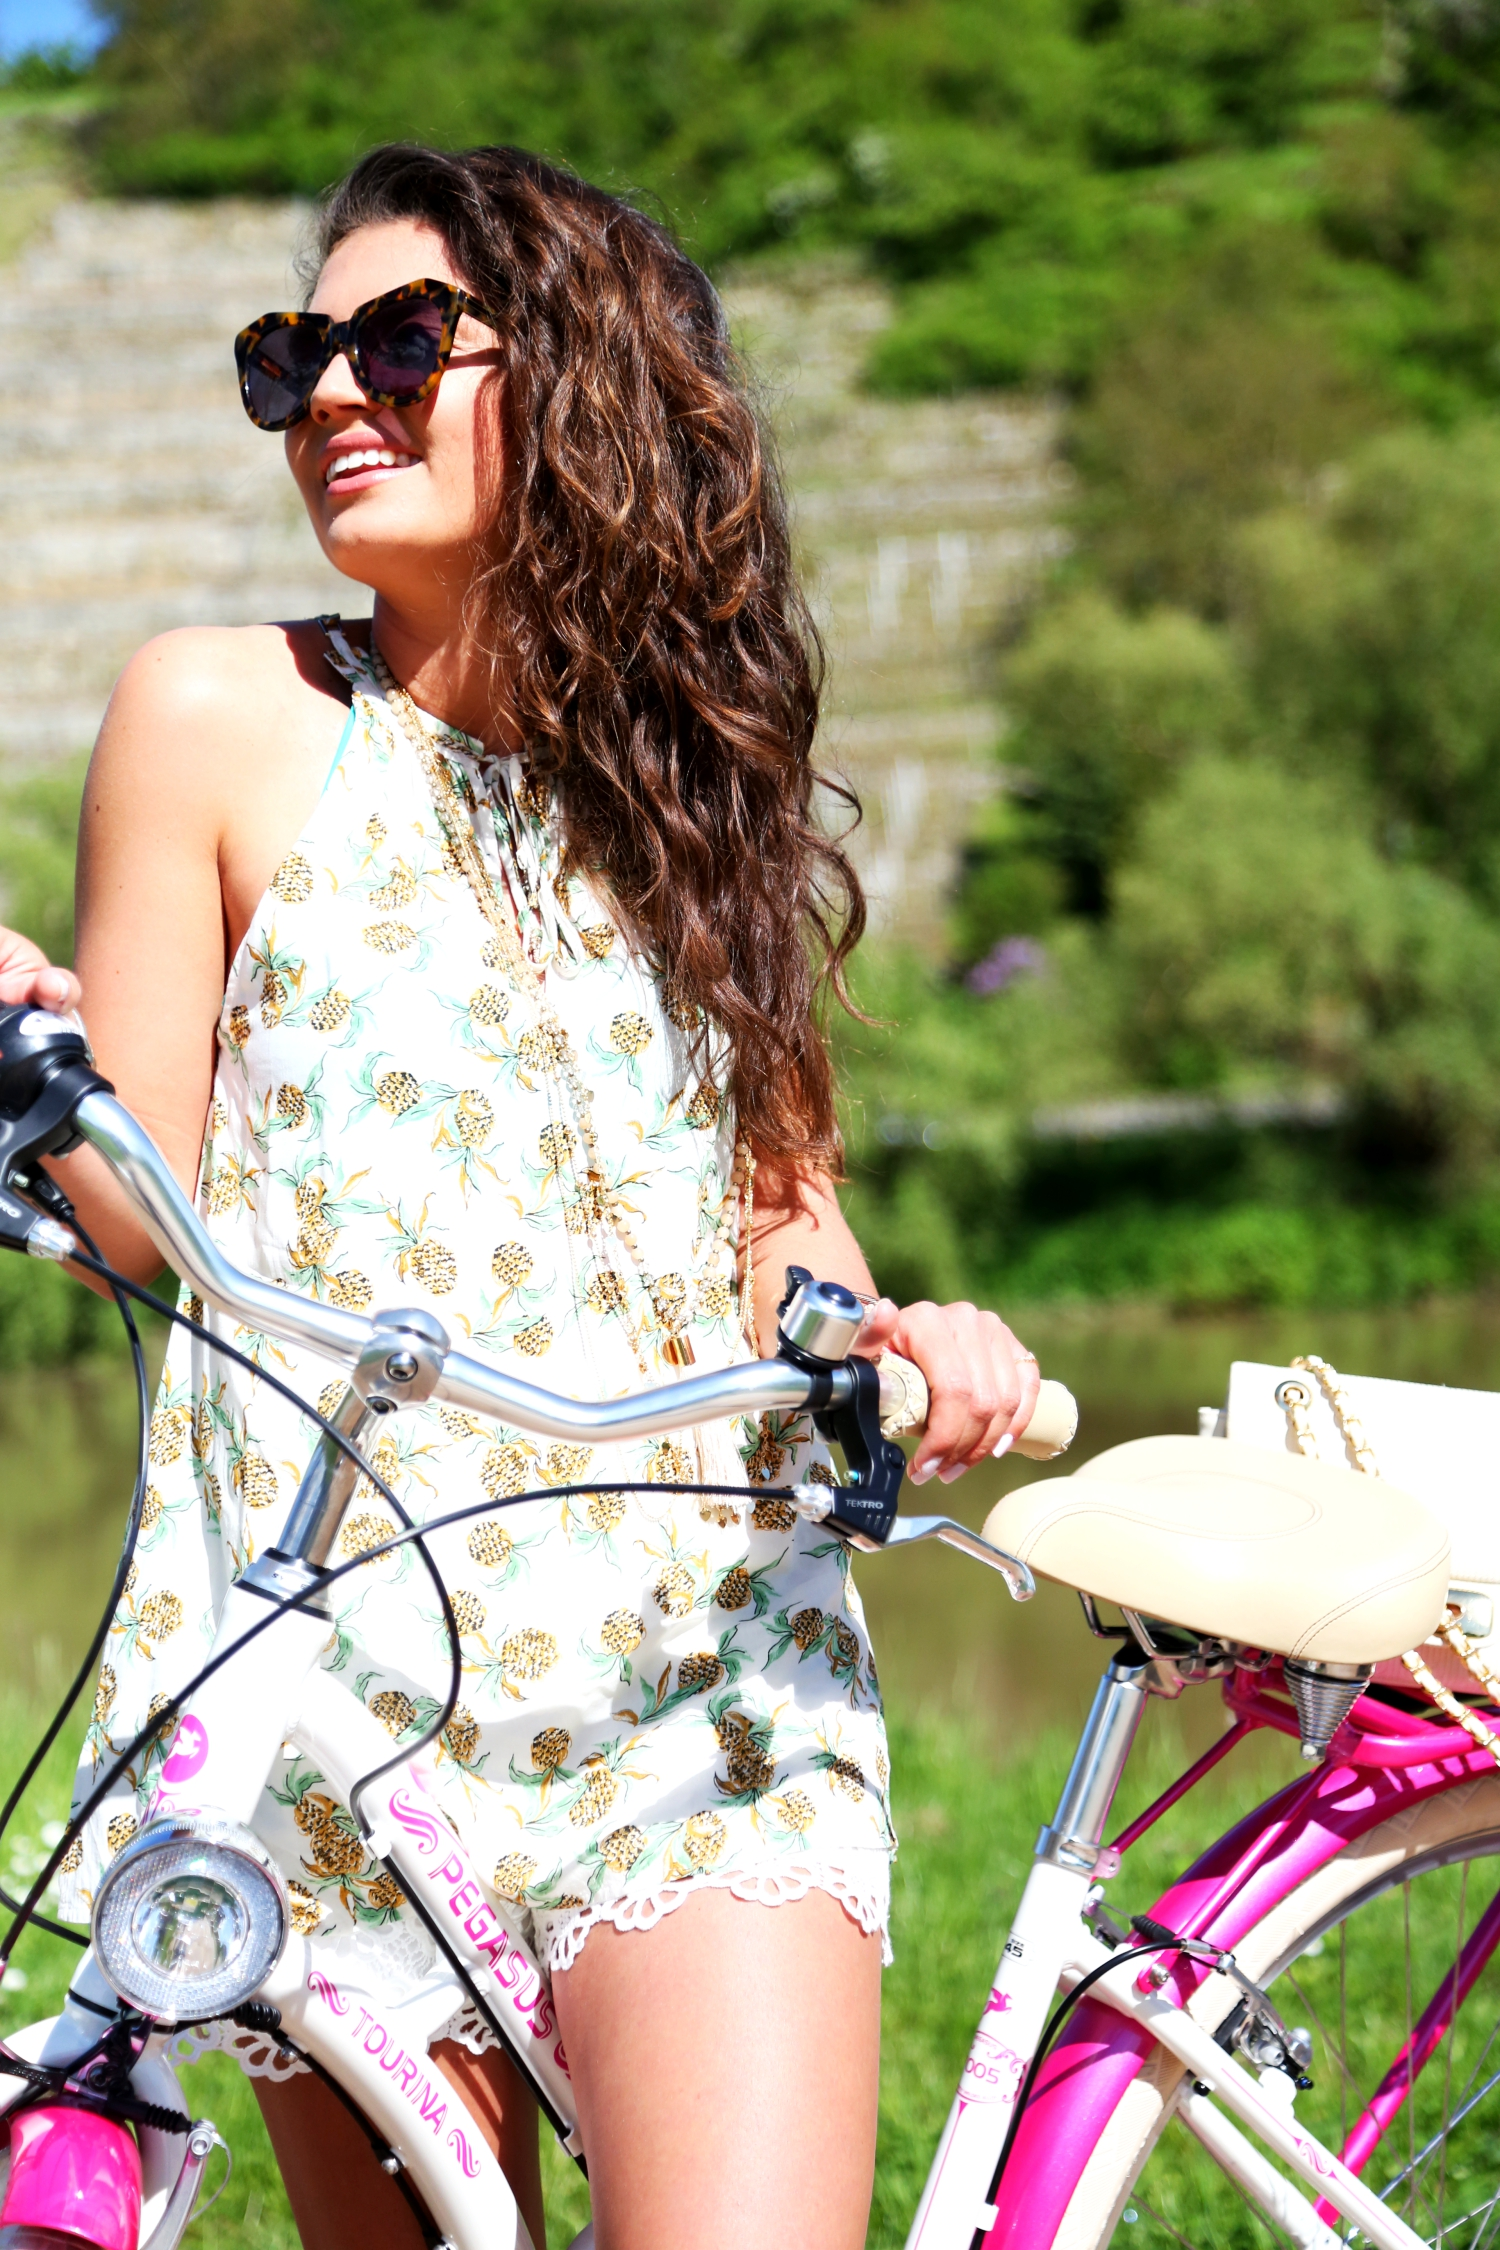 hallhuber-outfit-bike-contest-fashion